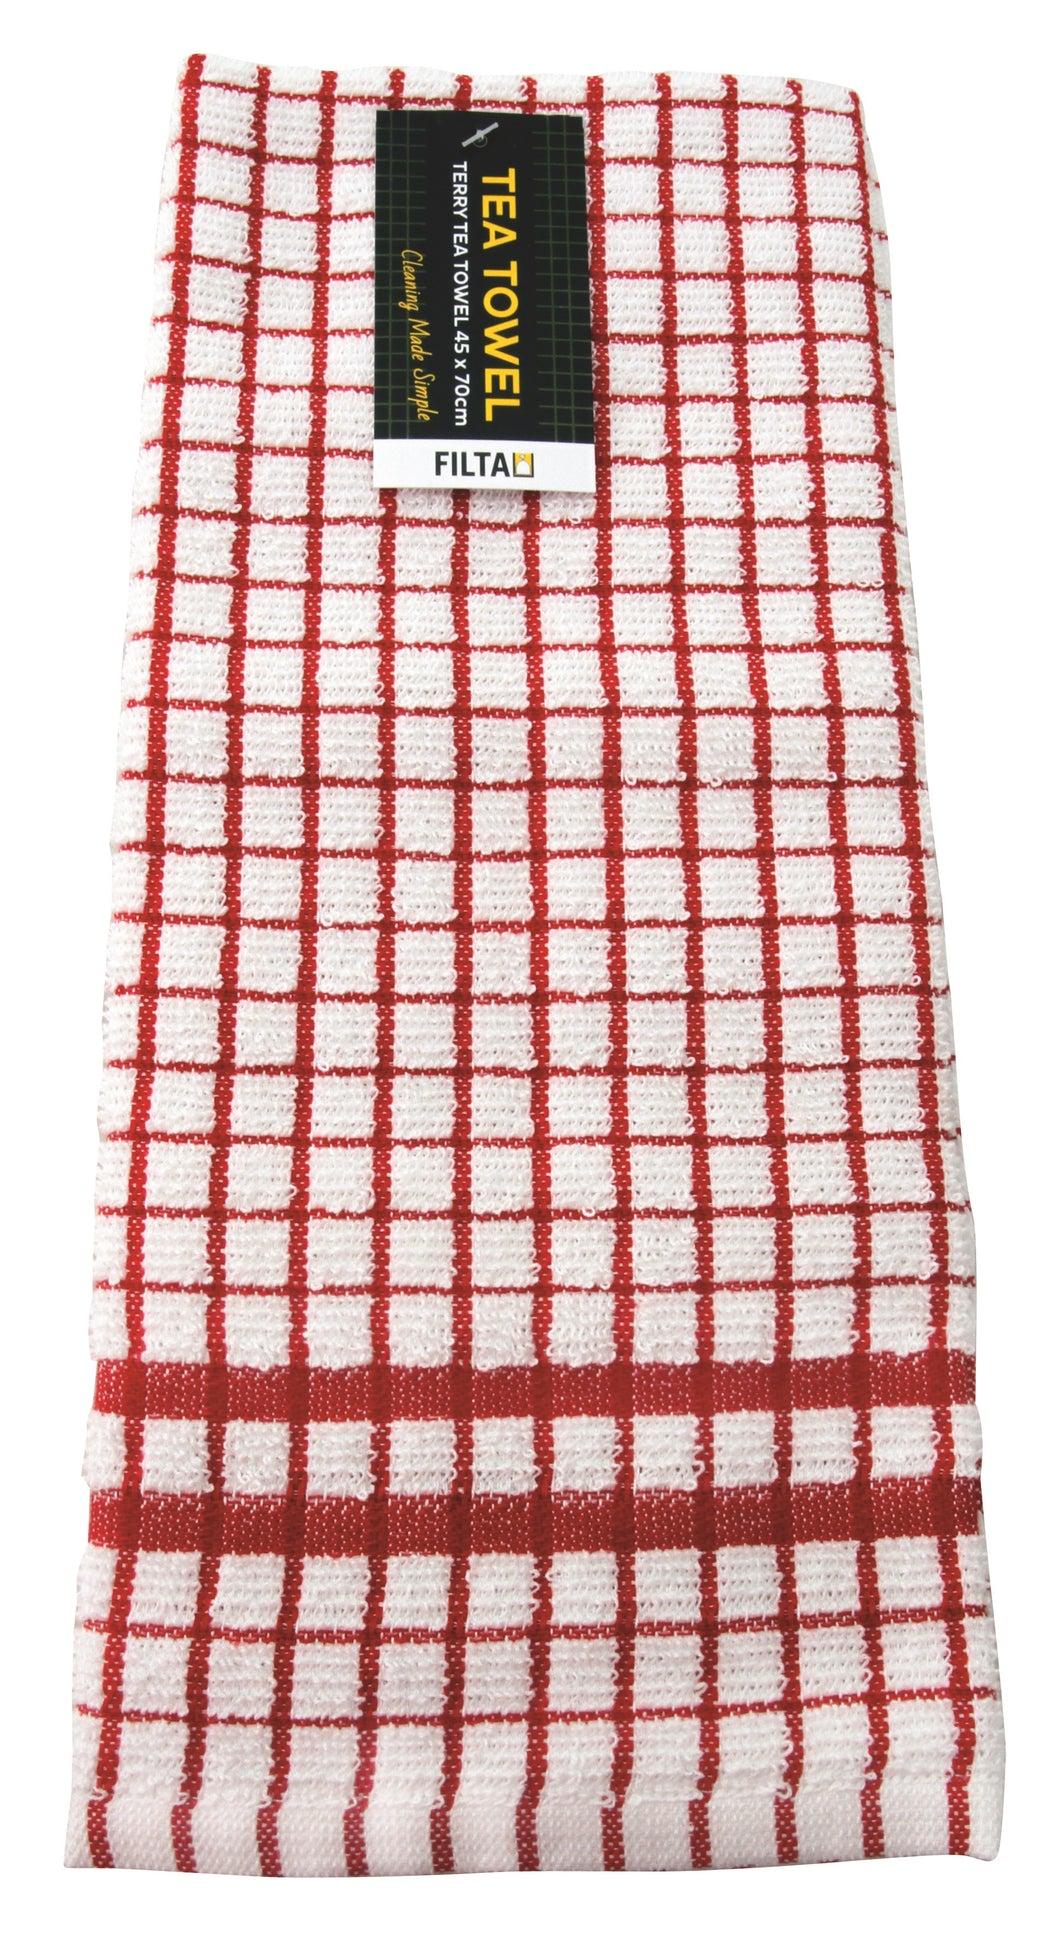 FILTA COTTON TEA TOWEL TERRY Red - Sold by Single Unit in multiples of 10 Units